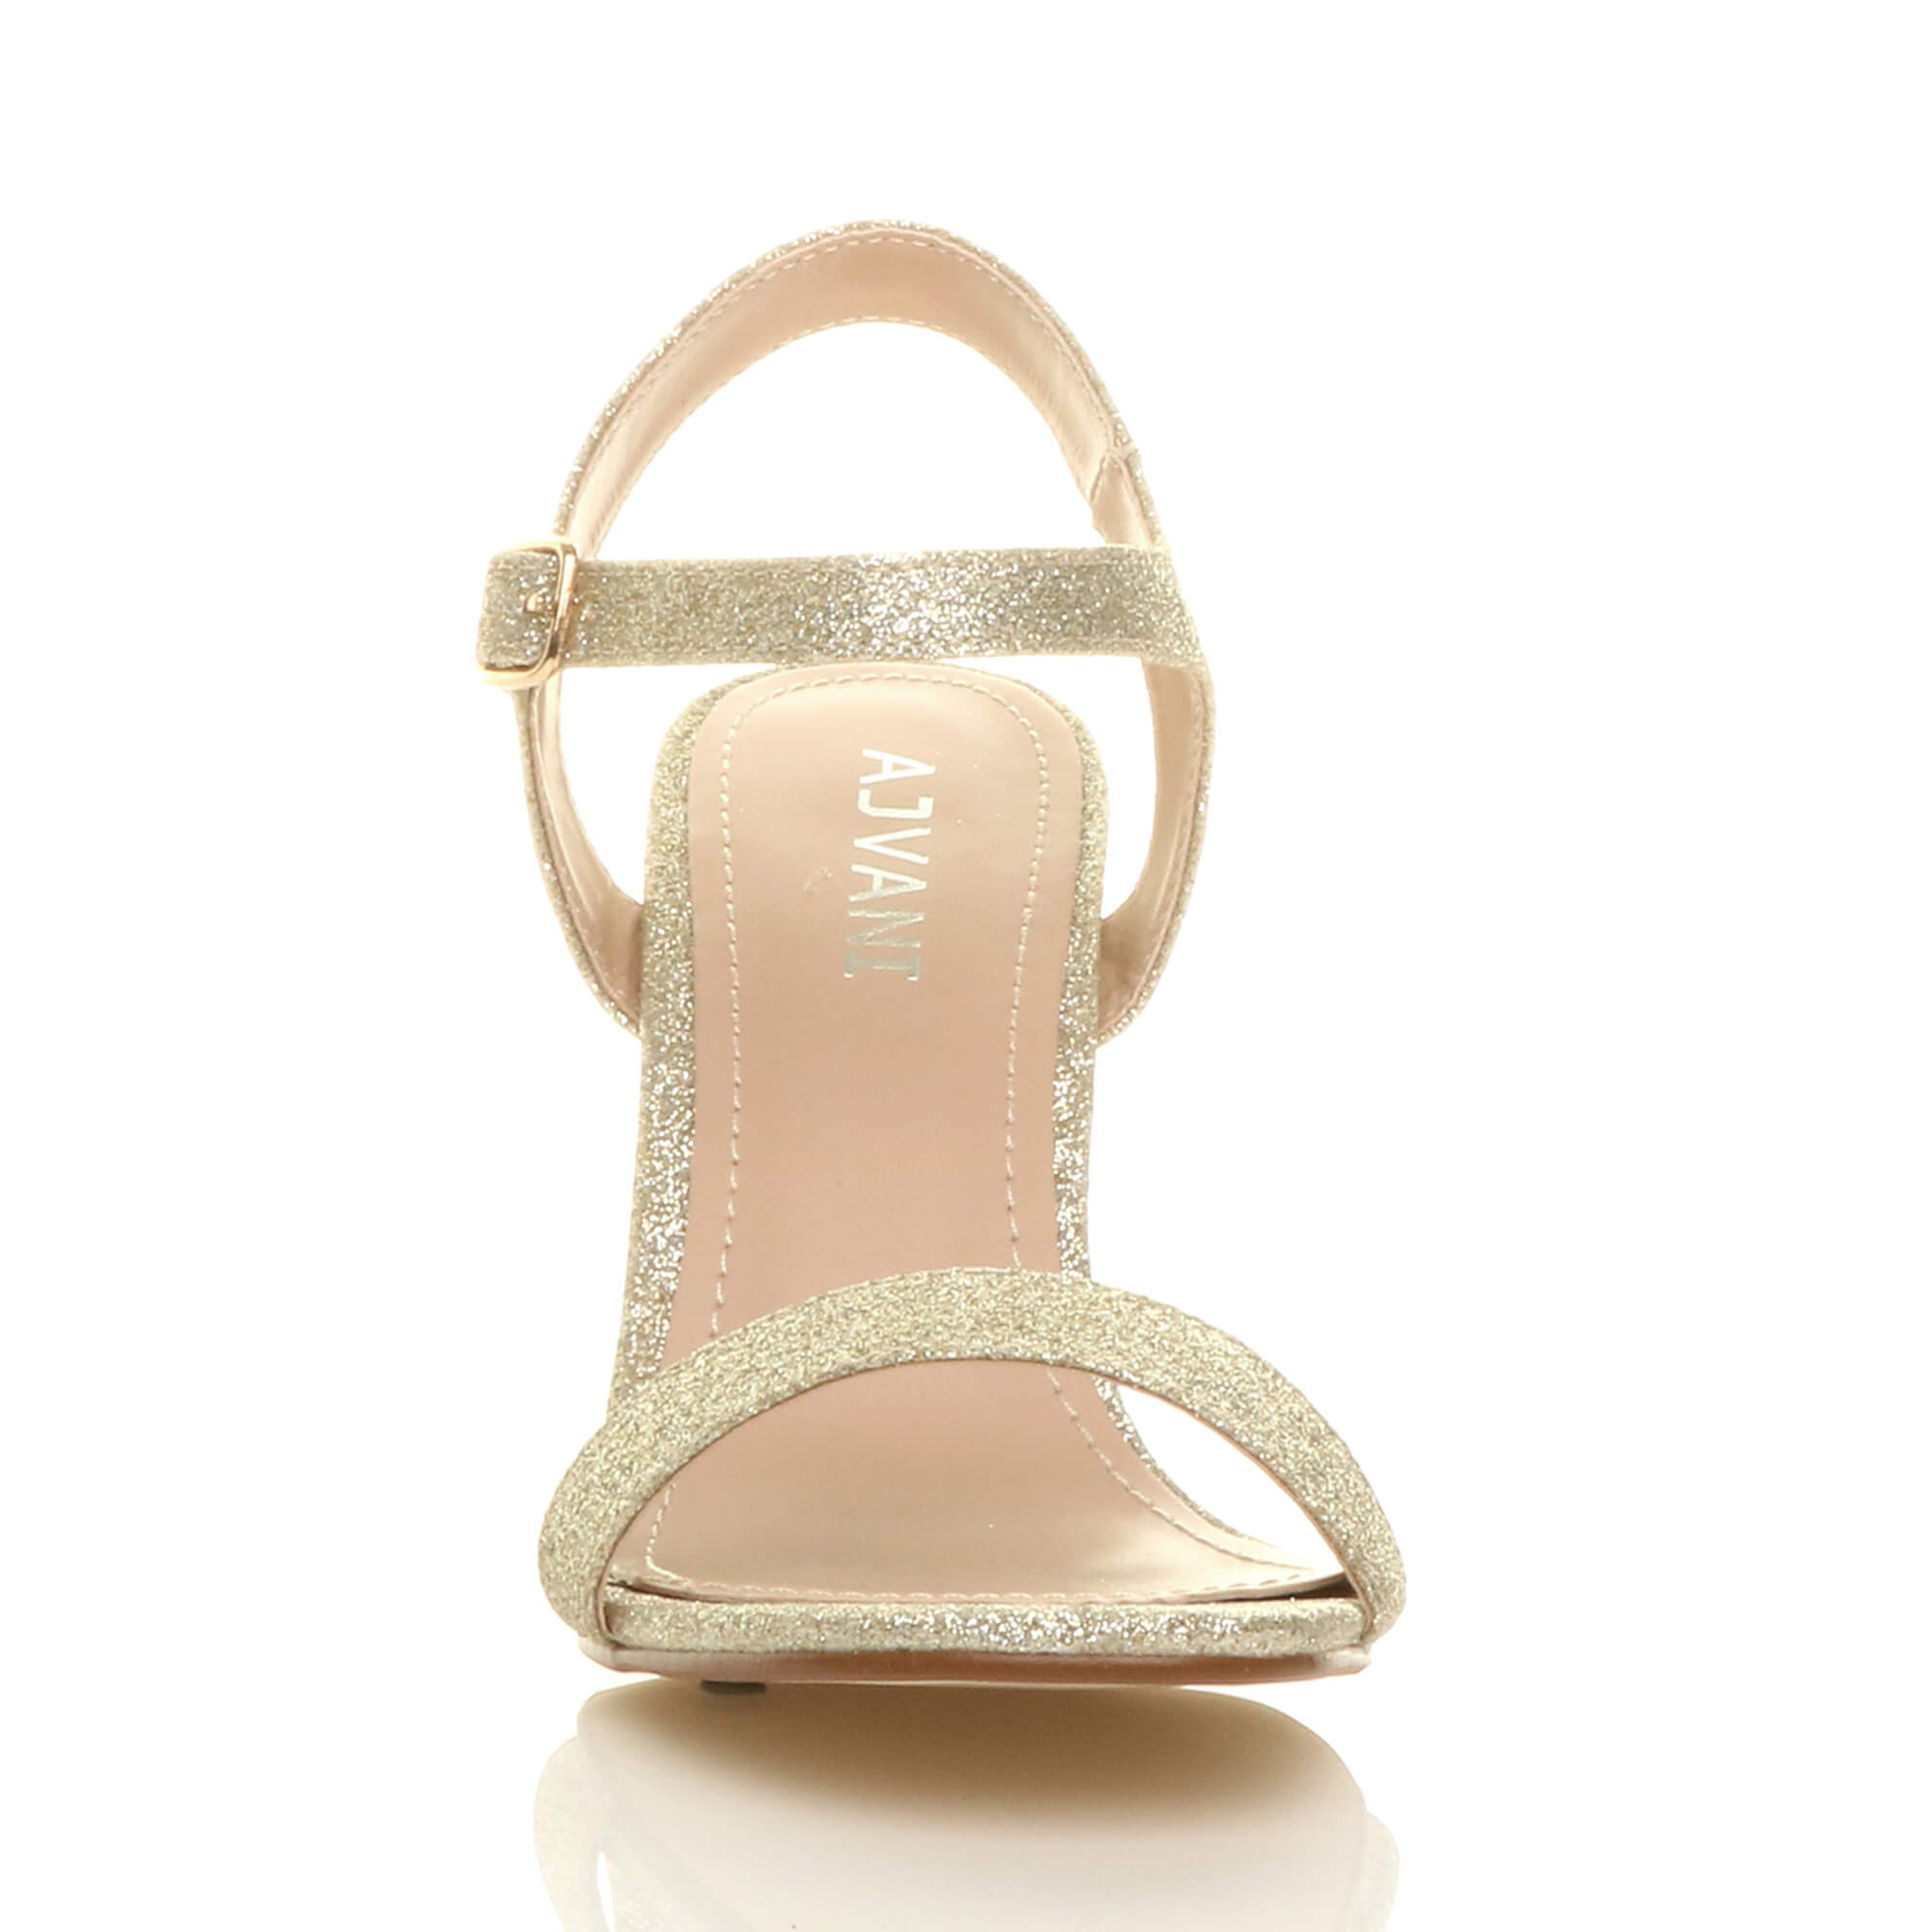 WOMENS-LADIES-HIGH-HEEL-BUCKLE-STRAPPY-BASIC-BARELY-THERE-SANDALS-SHOES-SIZE thumbnail 41